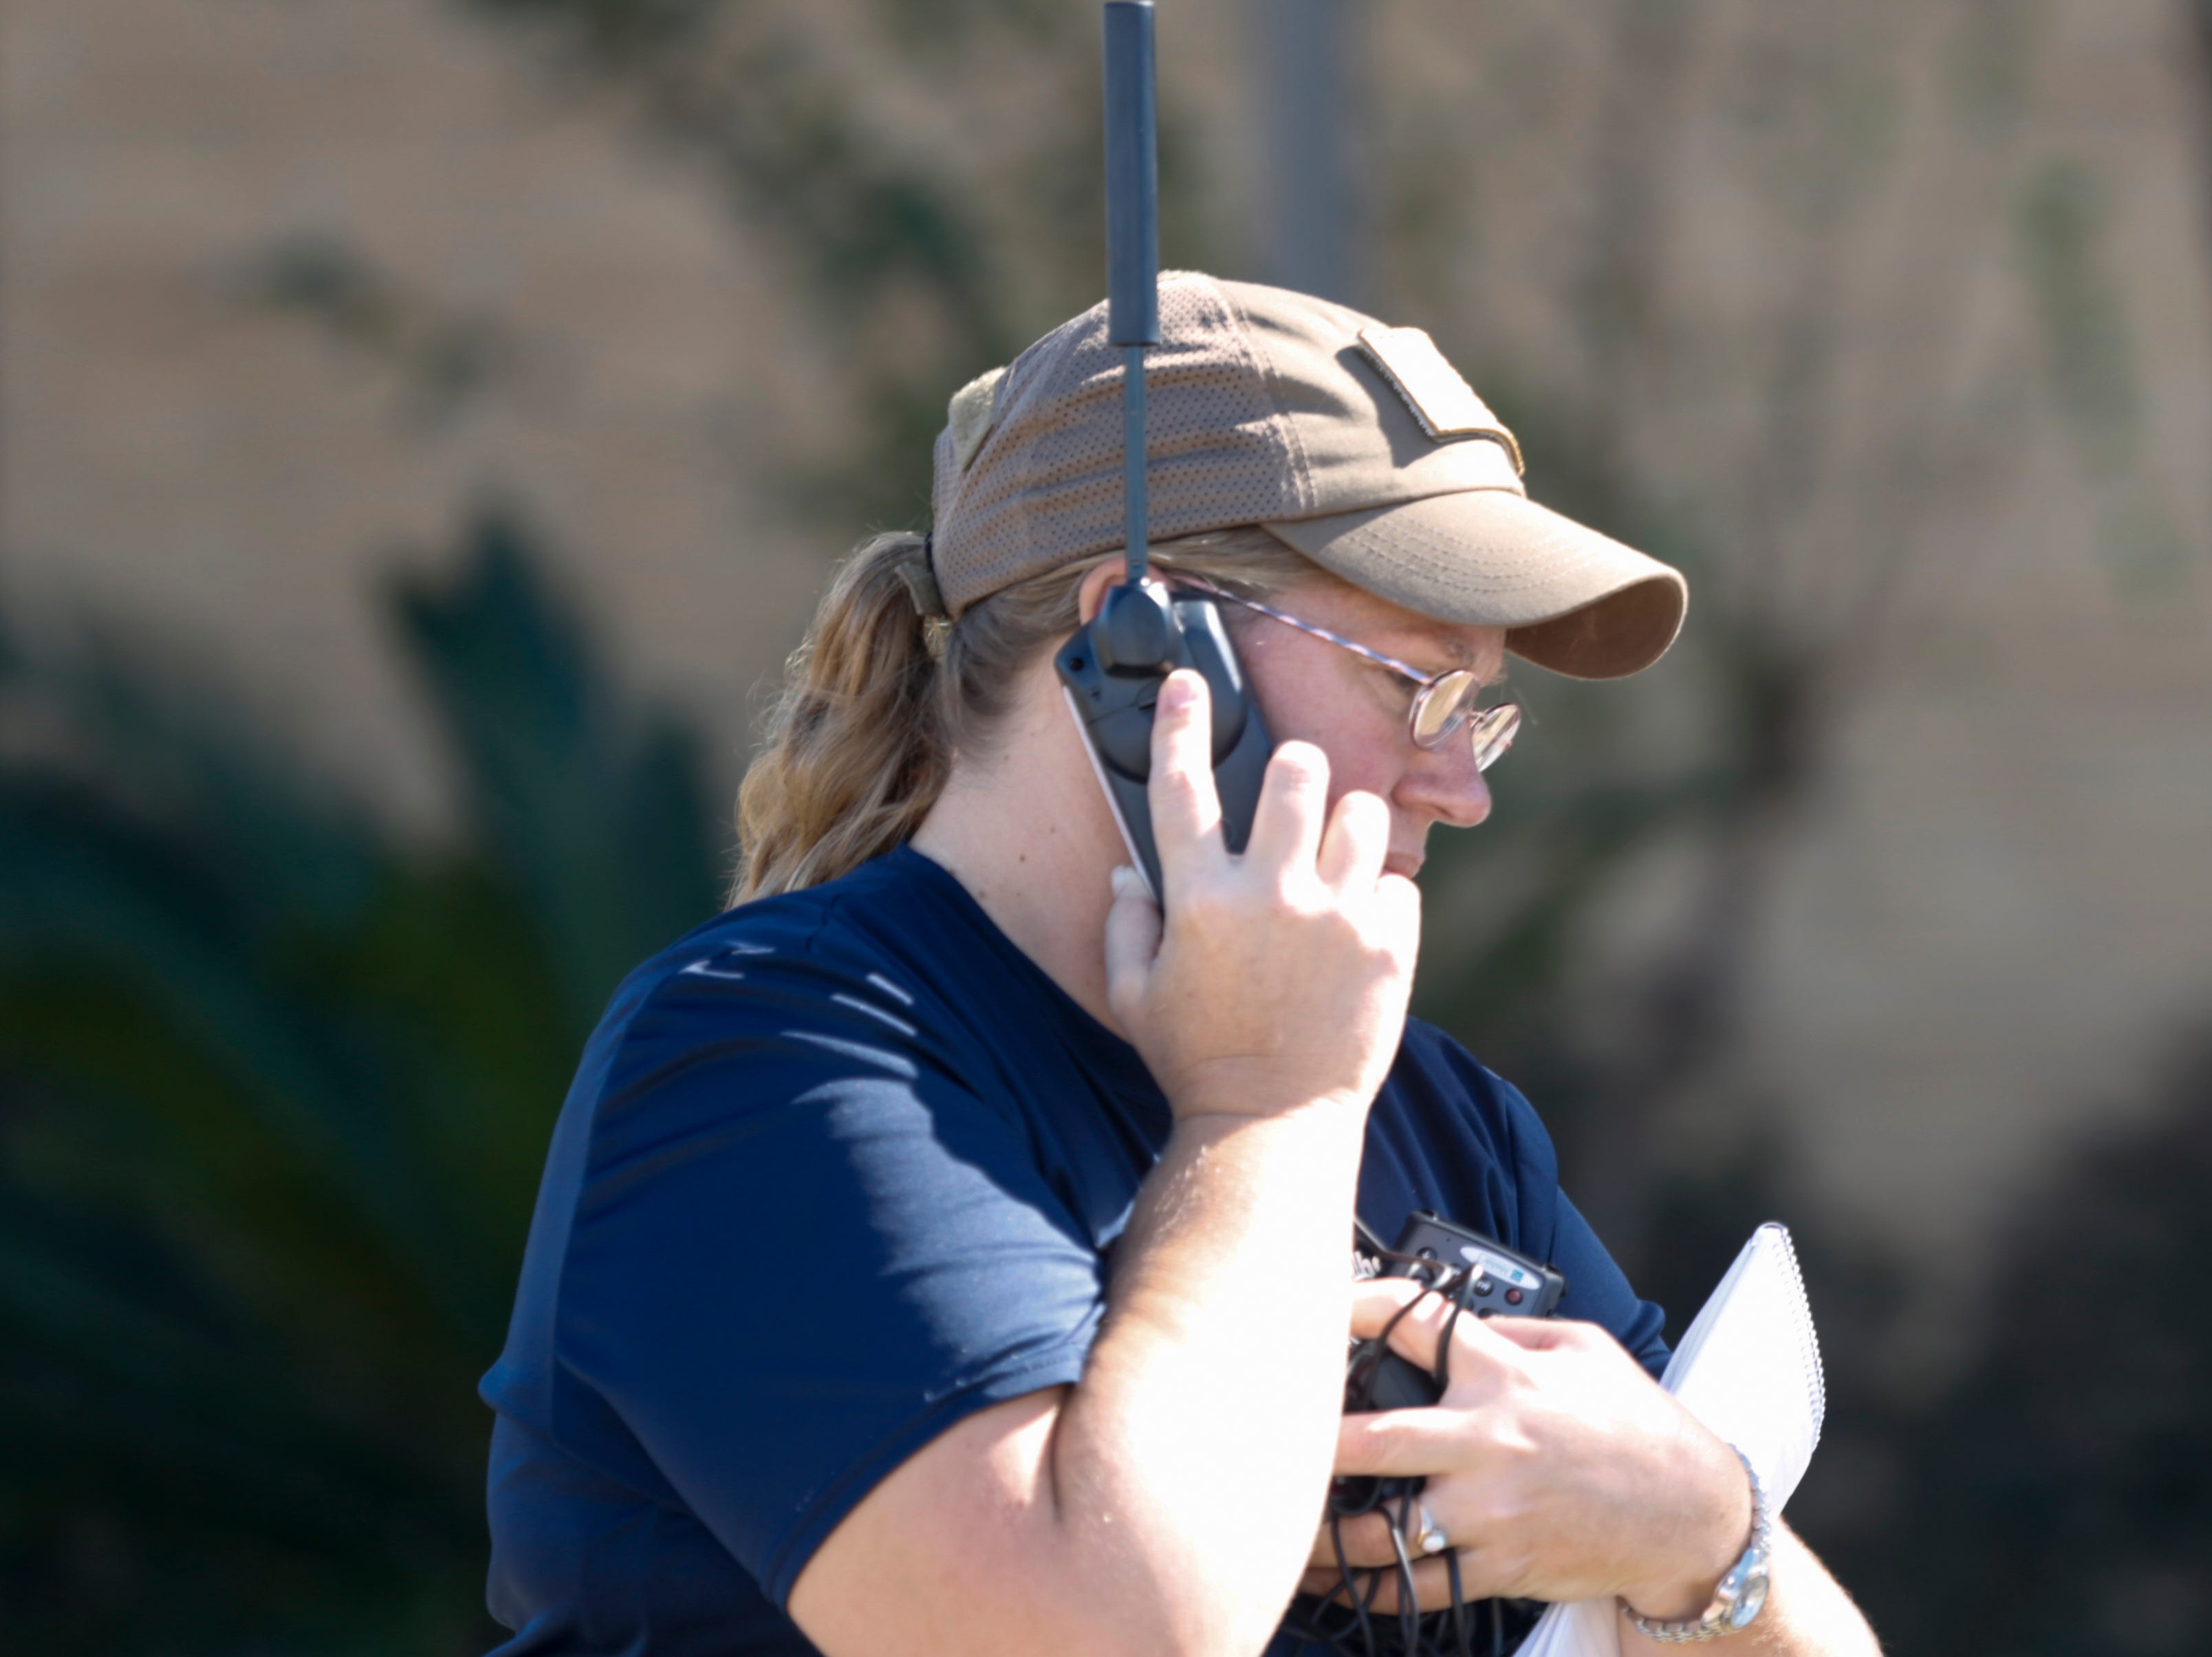 Calhoun County EMS employee Tammy Terry works a satellite phone at the Calhoun County Courthouse in Blountstown, Fla. in the aftermath of Hurricane Michael Friday, Oct. 12, 2018.